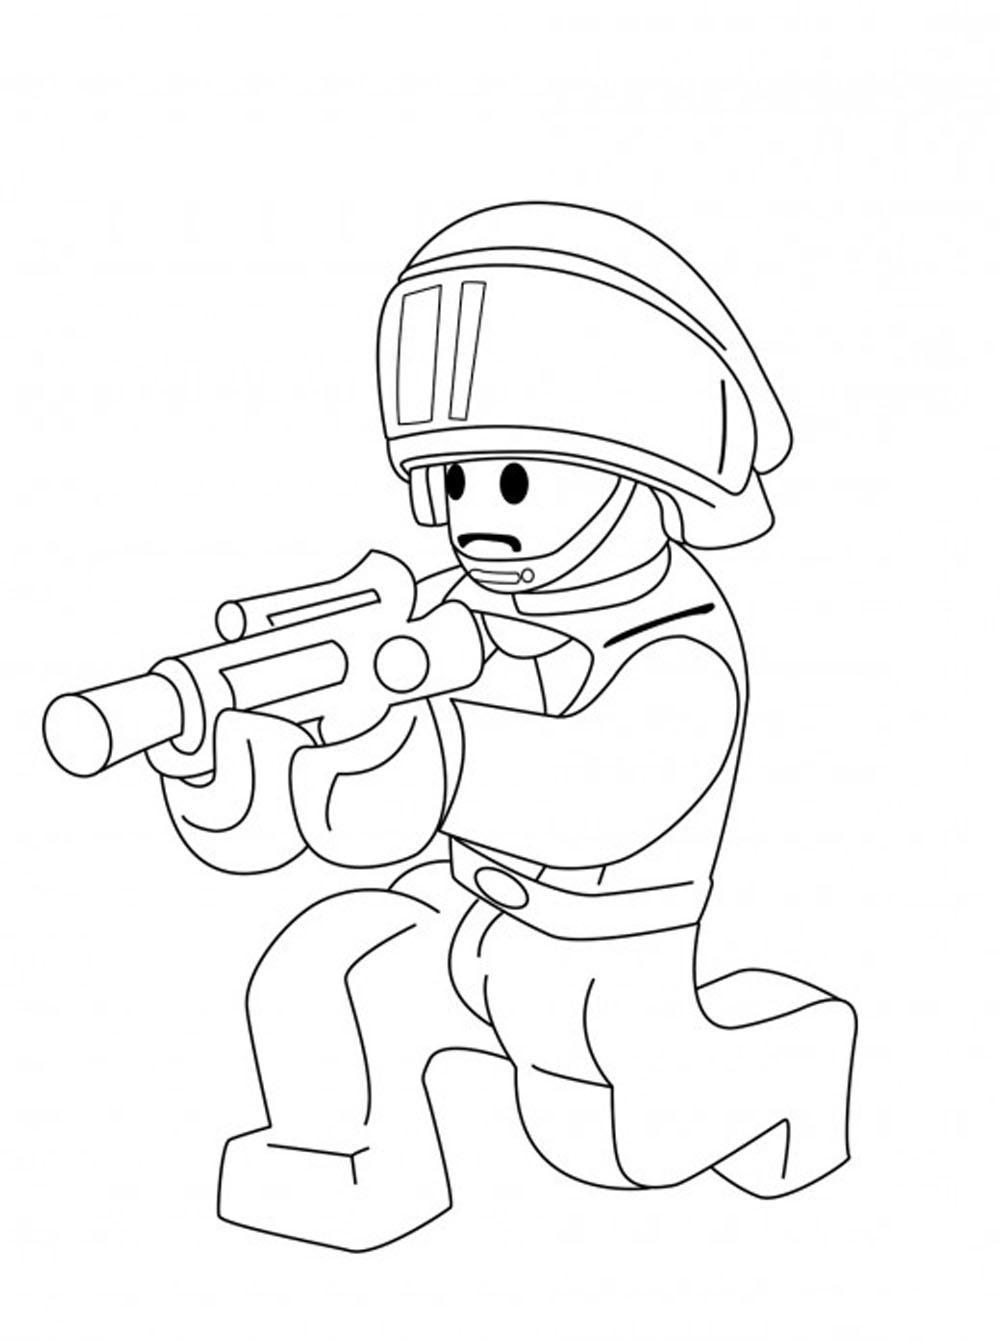 free lego star wars coloring pages lego star wars coloring pages free printable wars coloring pages lego free star